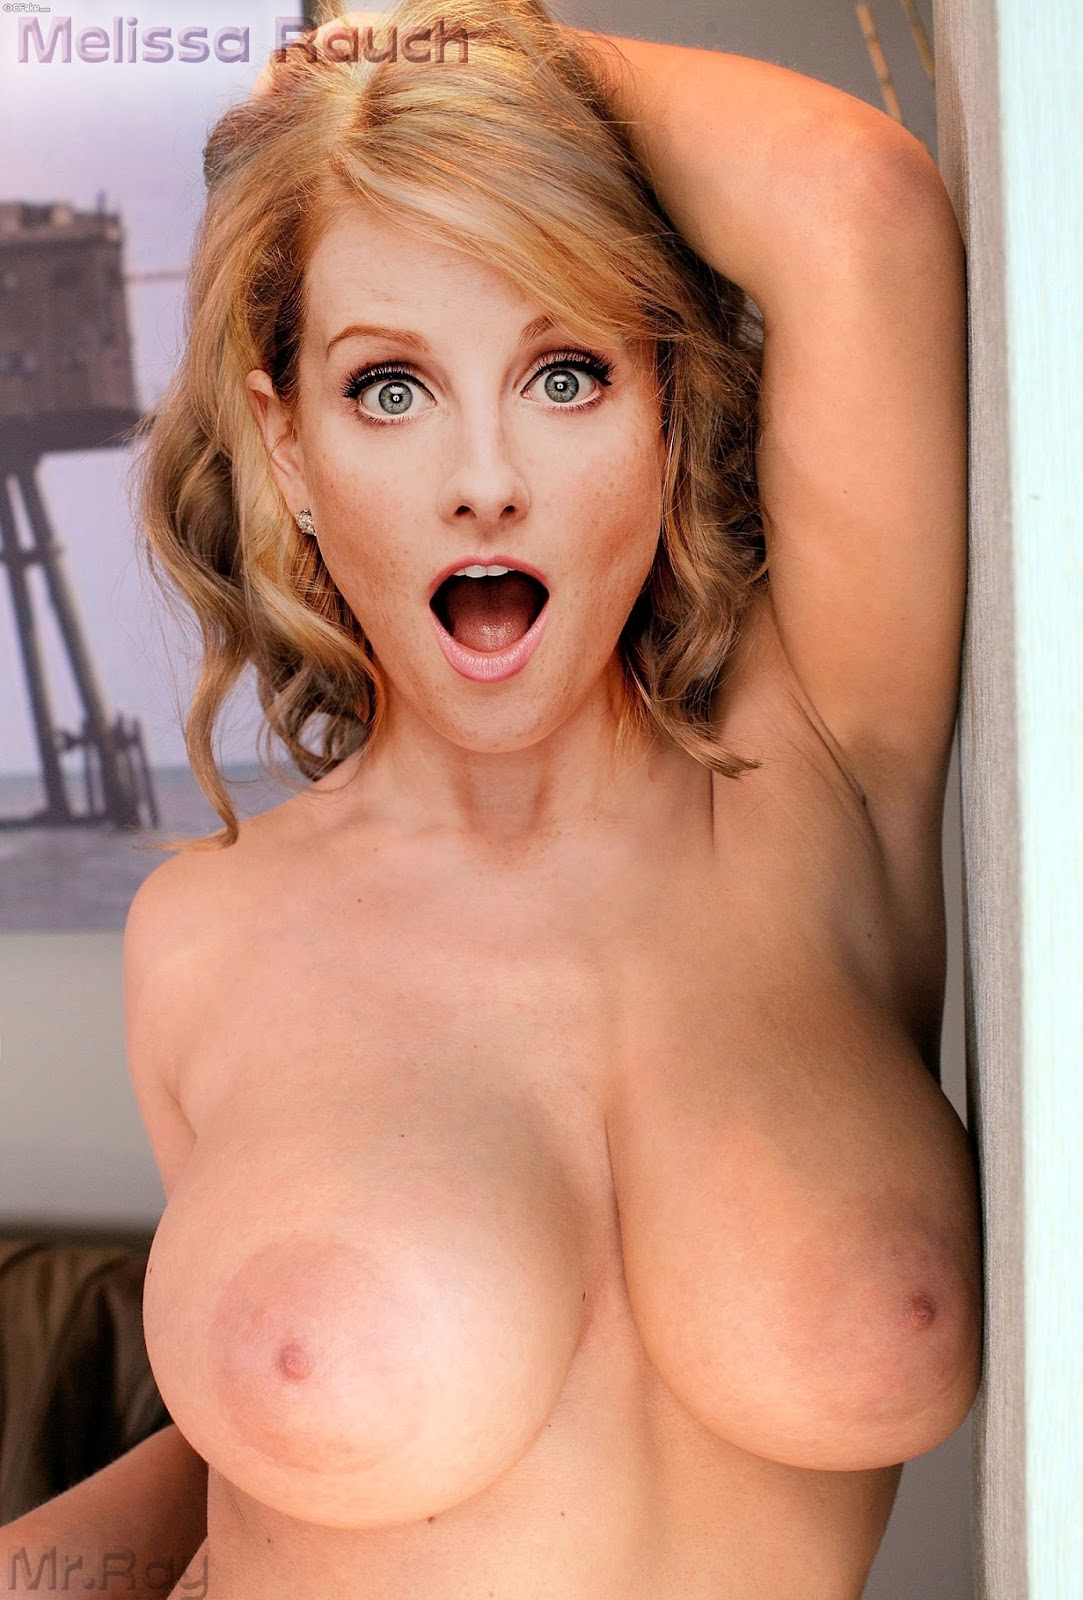 Big boobs Melissa Rauch nude tits sexy naked nipple fake porn Naked without Clothes Comedian xxx